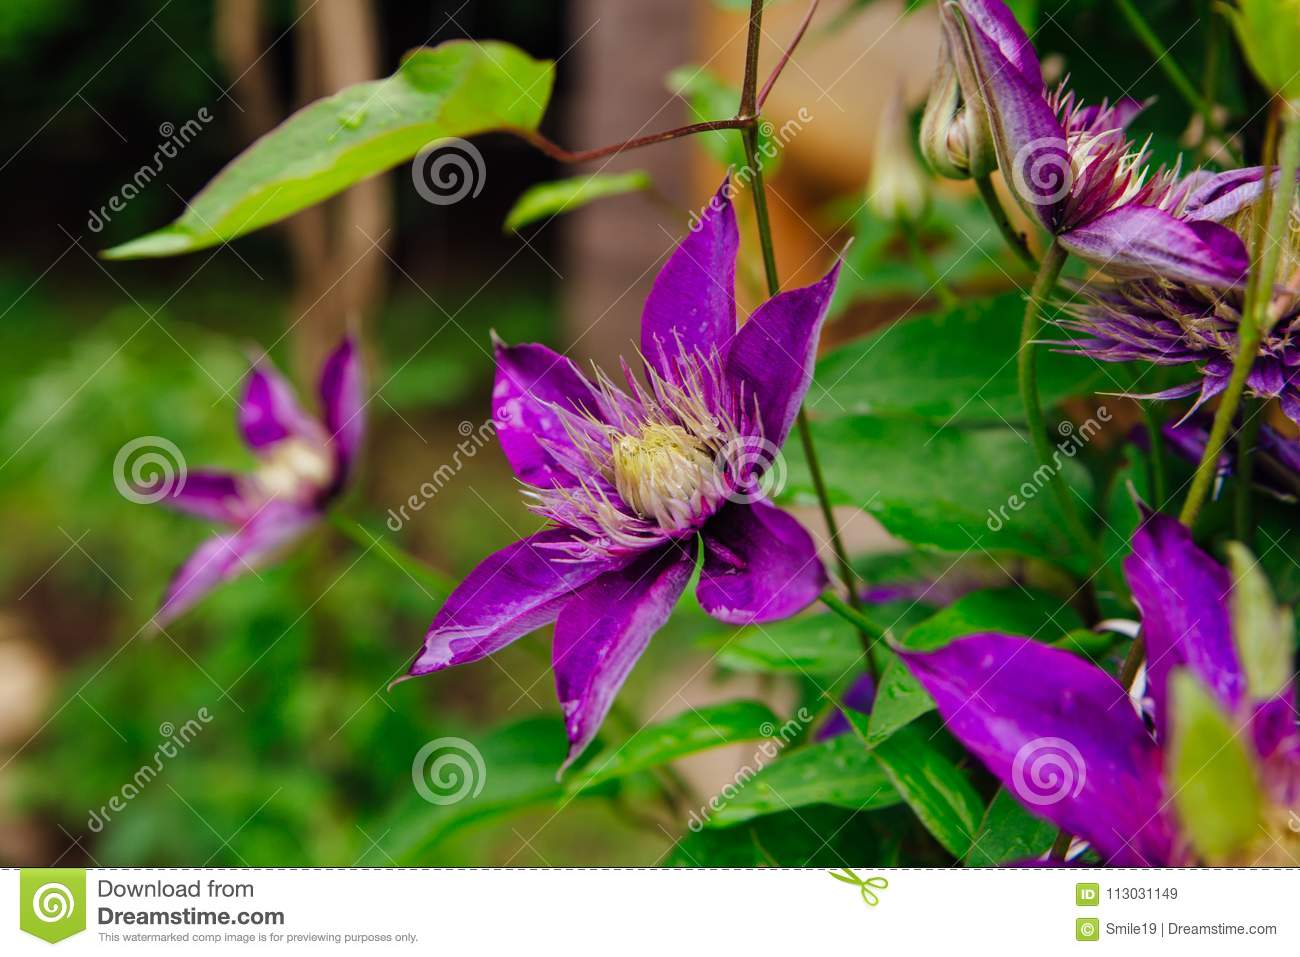 Big purple flowers named clematis or president flower after rain download big purple flowers named clematis or president flower after rain stock image image of mightylinksfo